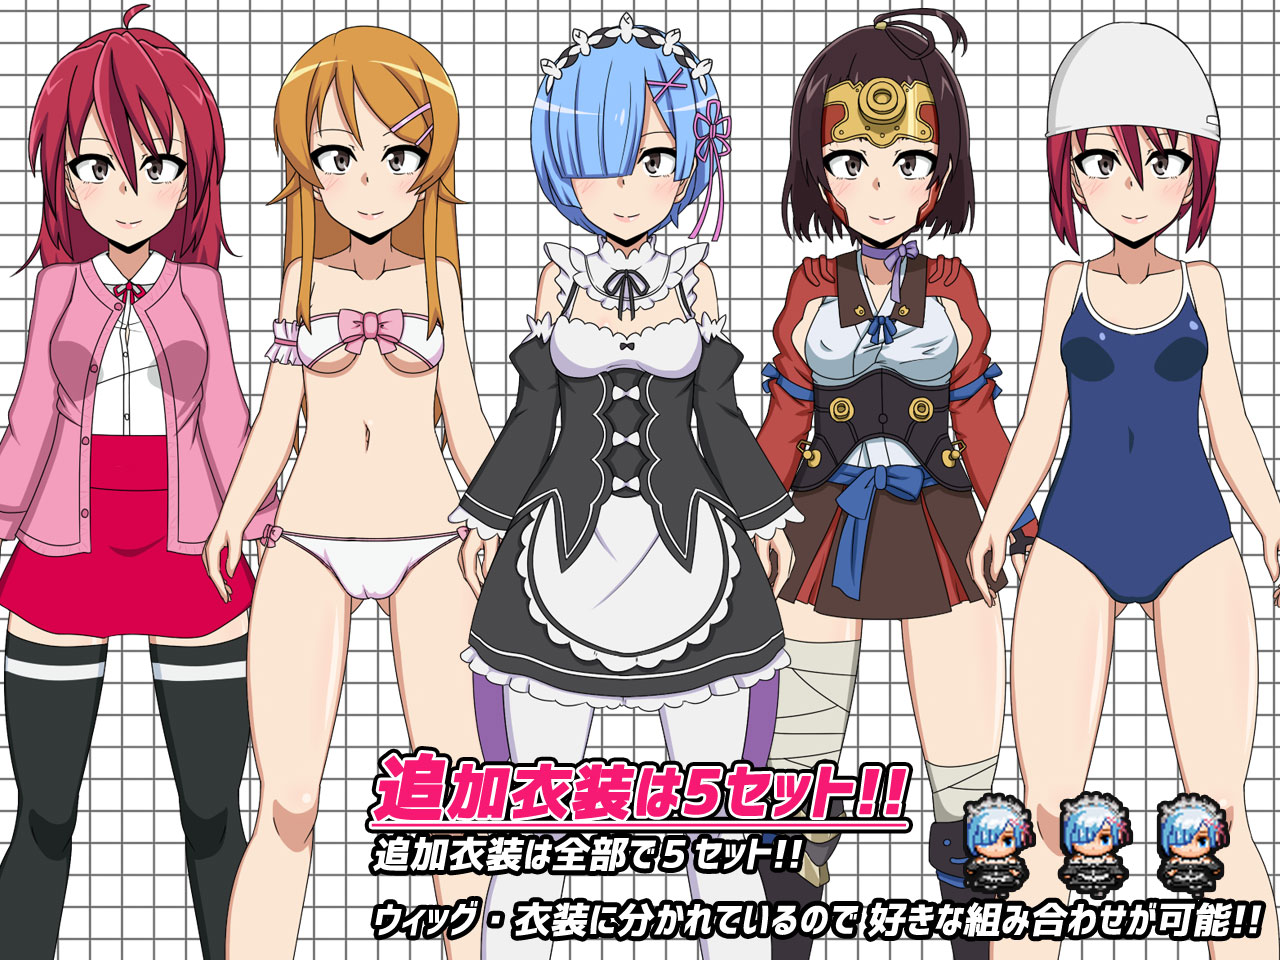 3 Way Hentai Game cos ro 3 v1.24 + dlc] [h.h.works [completed] - xgames free